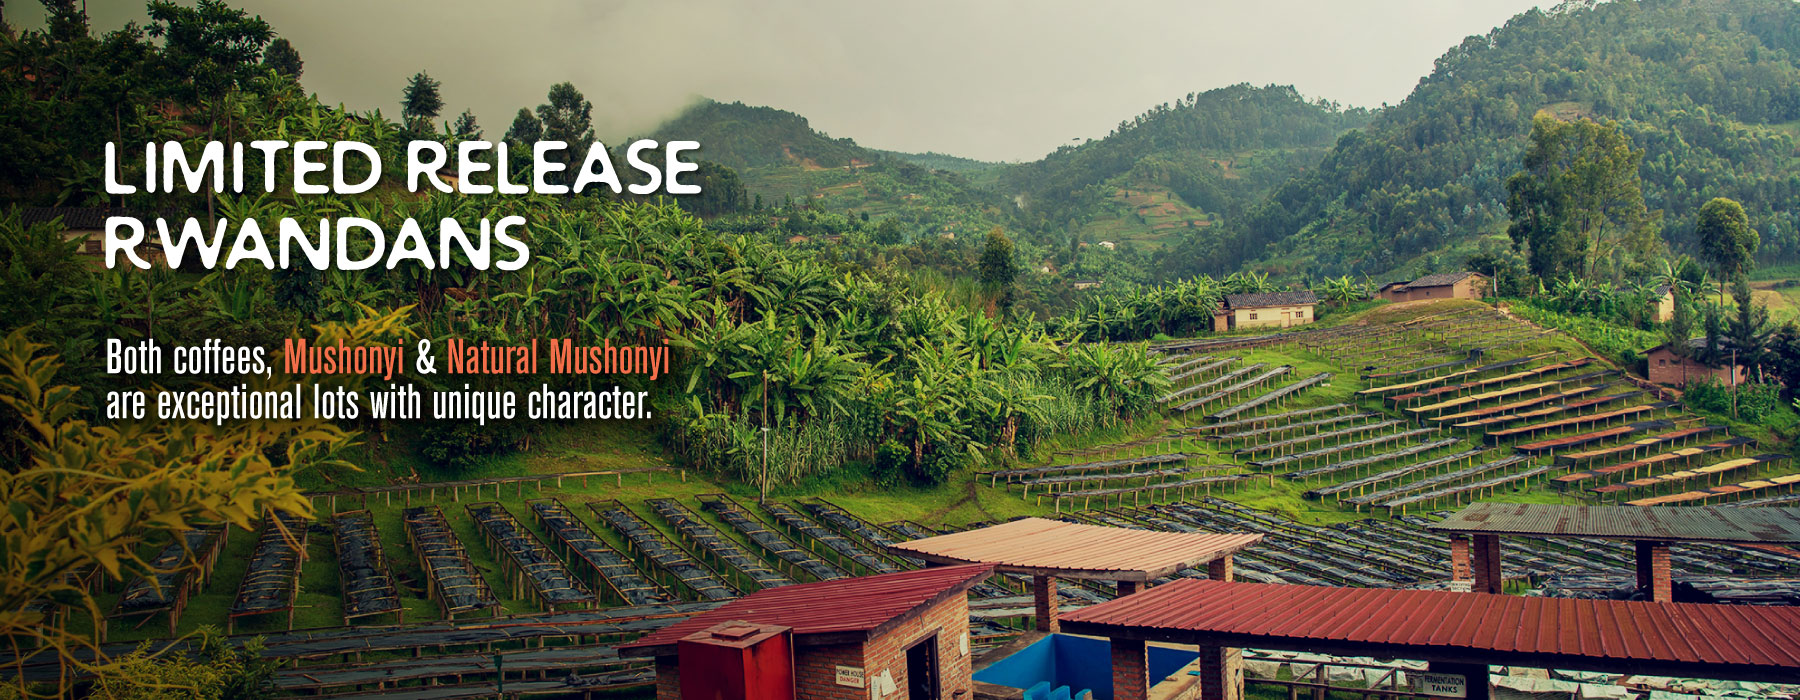 "Limited Release Rwanda Coffee from Mushonyi ""exceptional lots with unique character"""